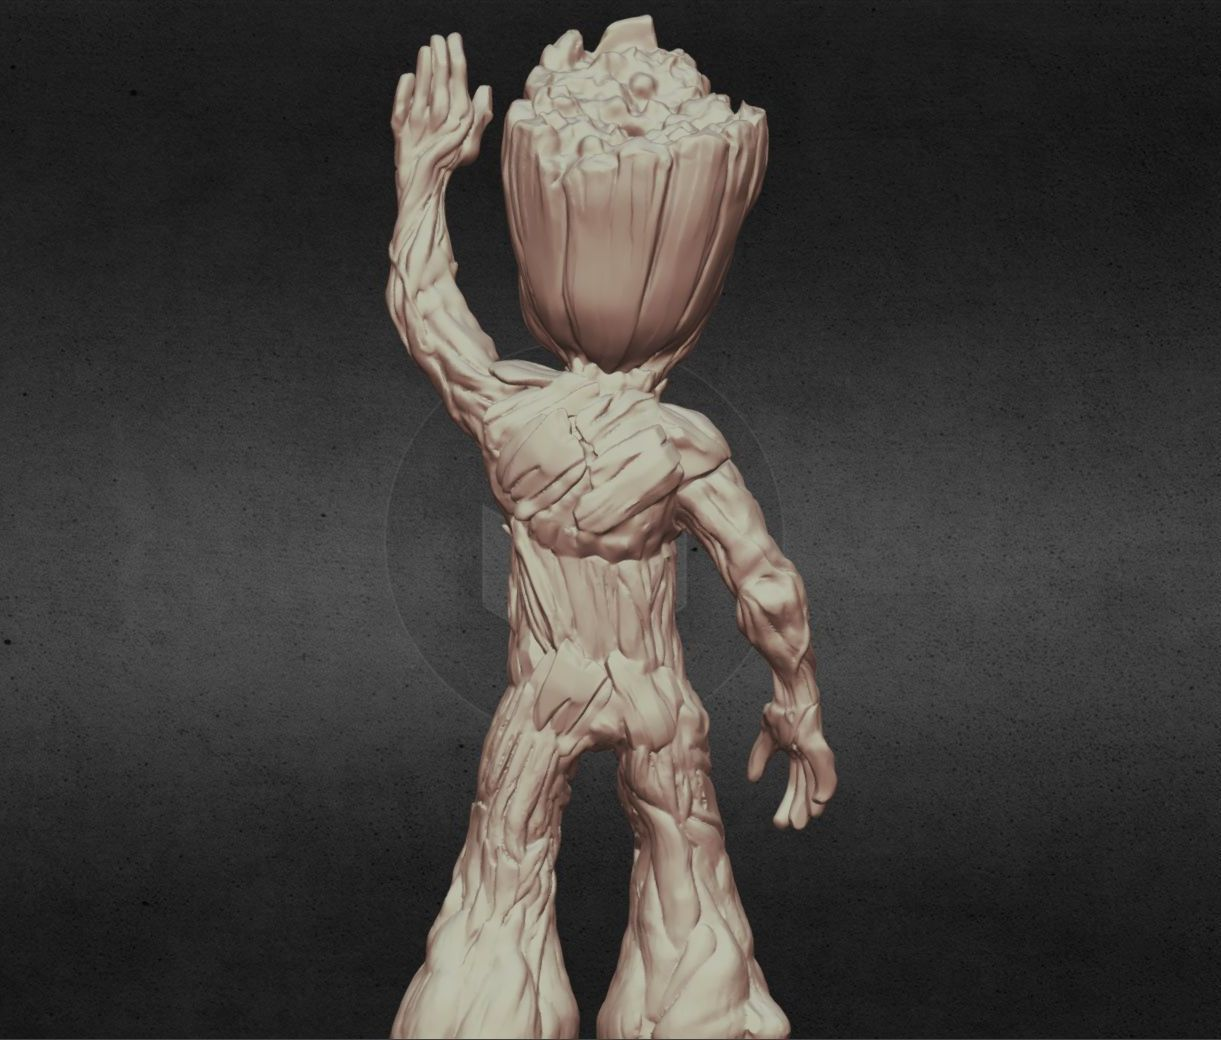 capture_06222017_113409.jpg Download OBJ file LIL BABY GROOT • 3D print template, Masterclip